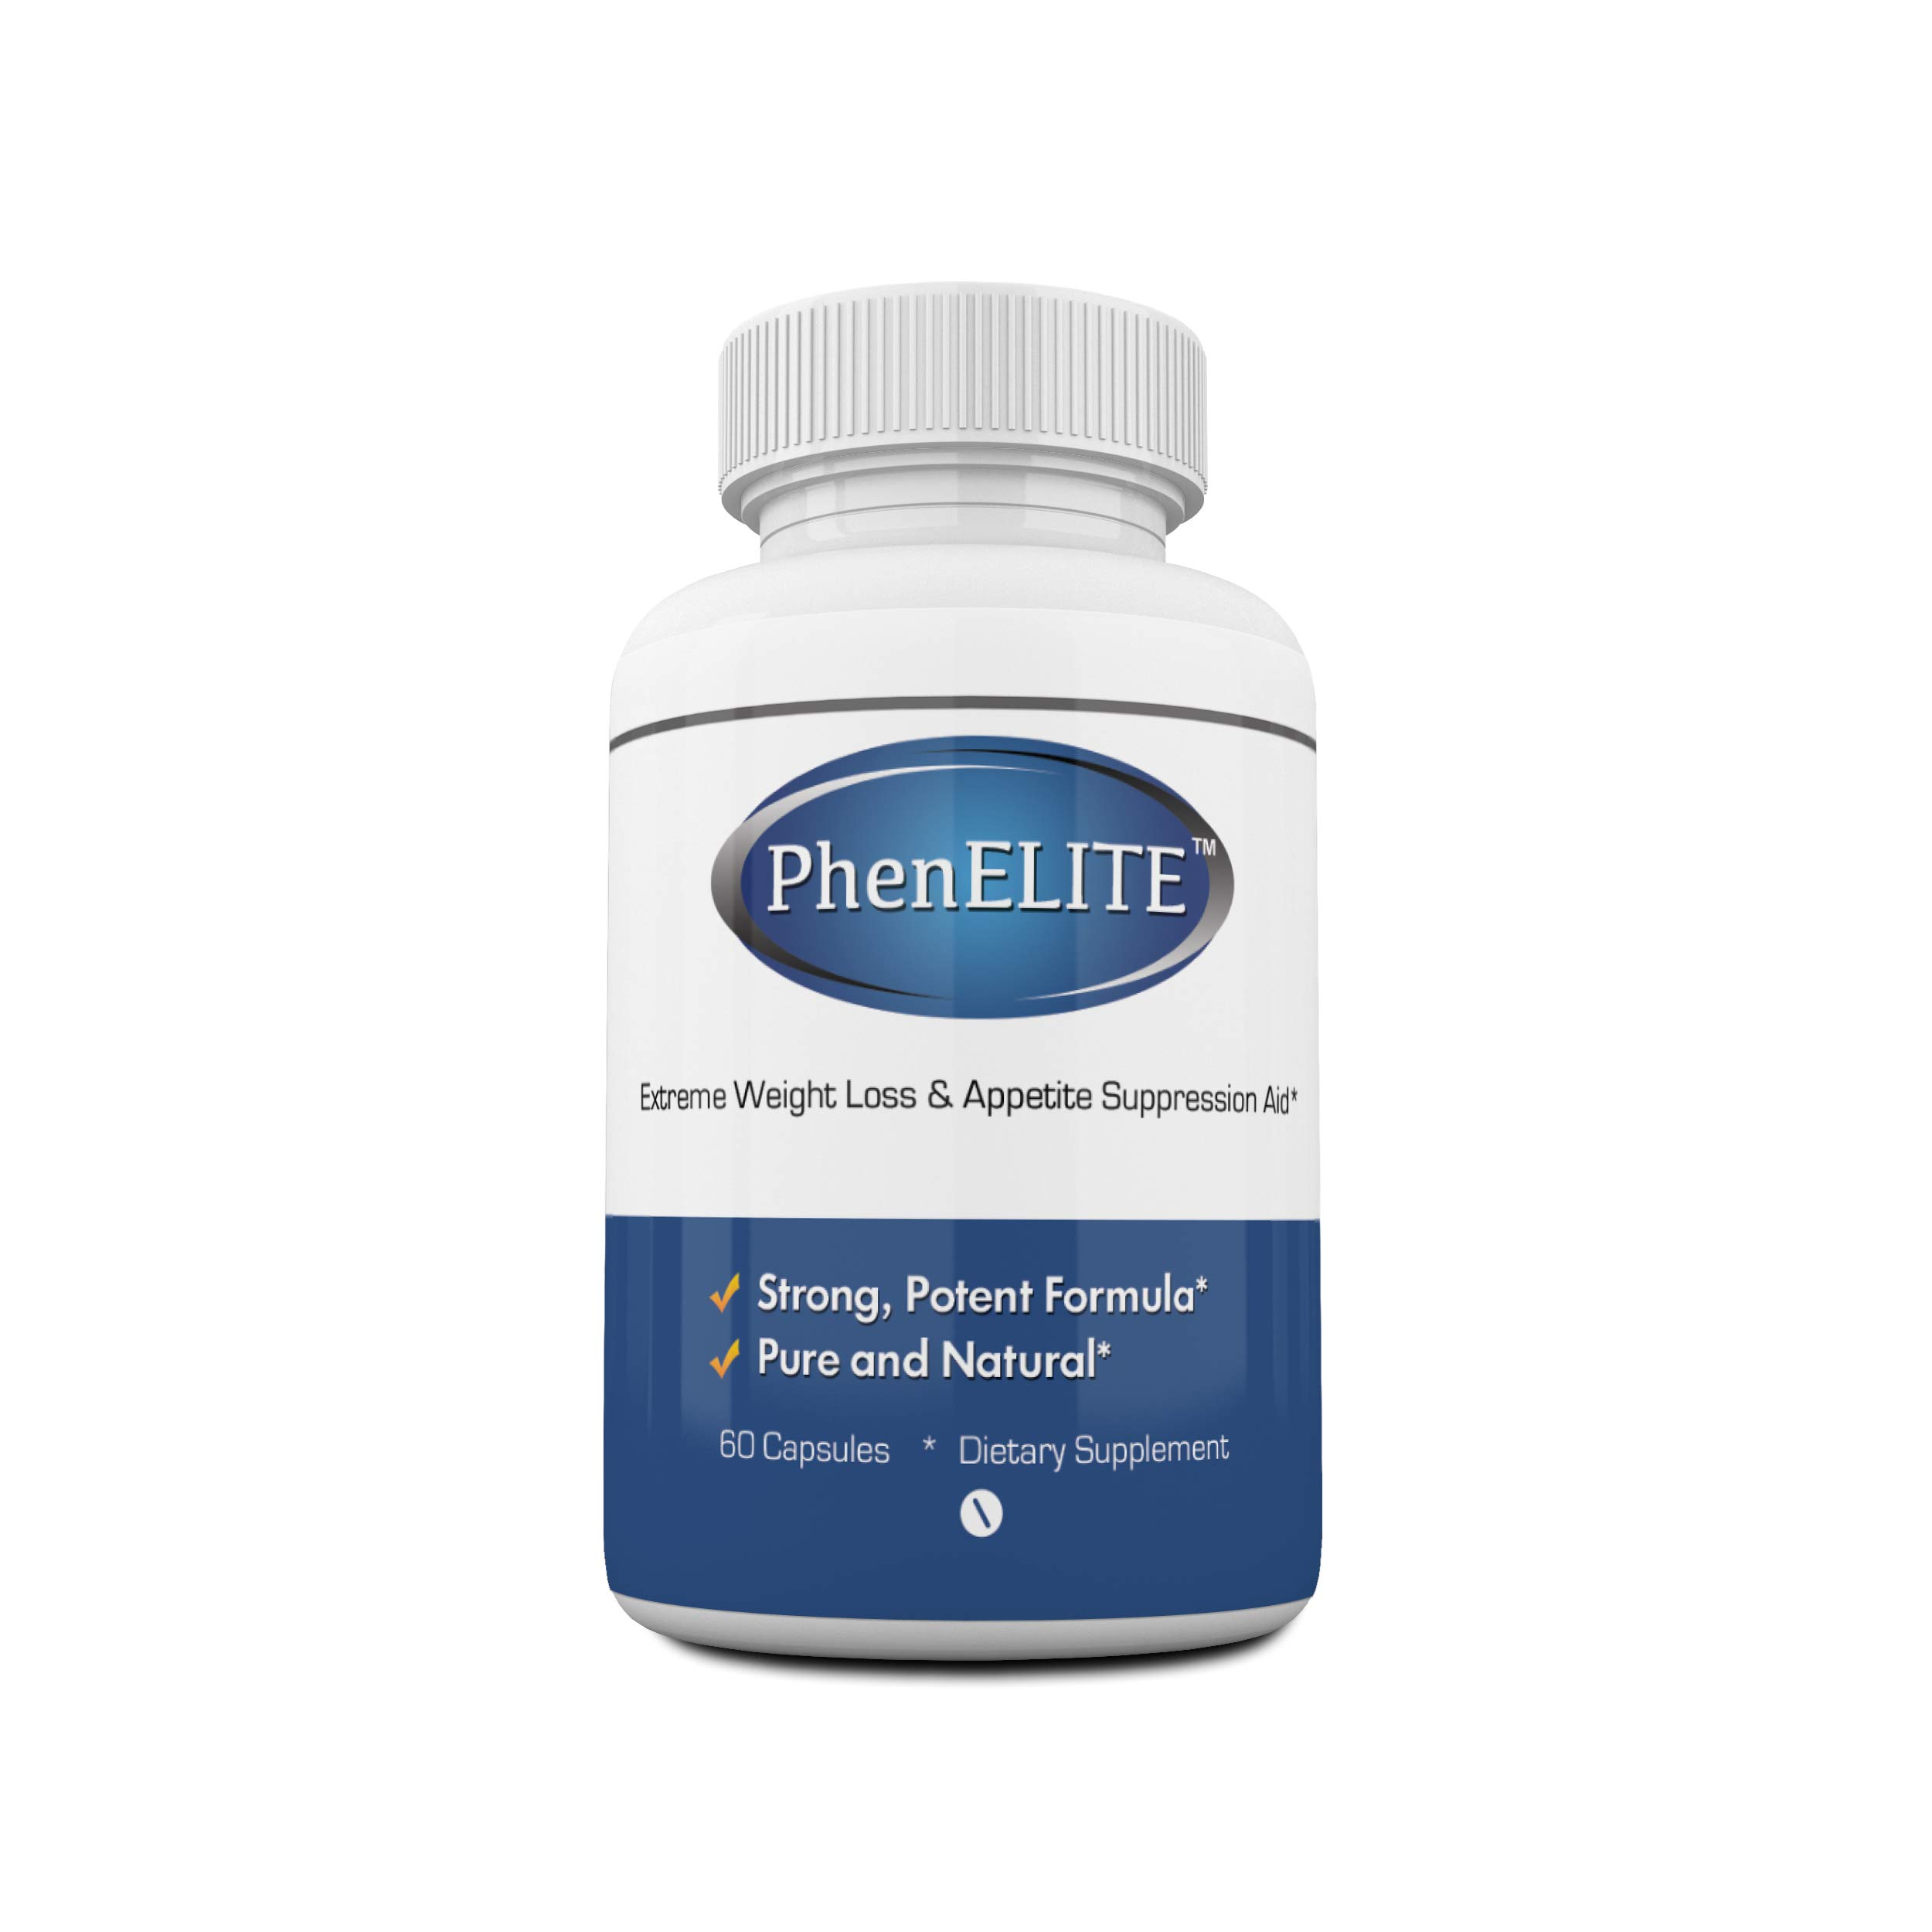 PhenELITE Weight Loss & Appetite Suppressant: Belly Fat Burner & Diet Supplement Pill with Apple Cider Vinegar, Raspberry Ketones & Green Tea Extract - Boost Energy & Concentration - 60 Capsules by Phenelite